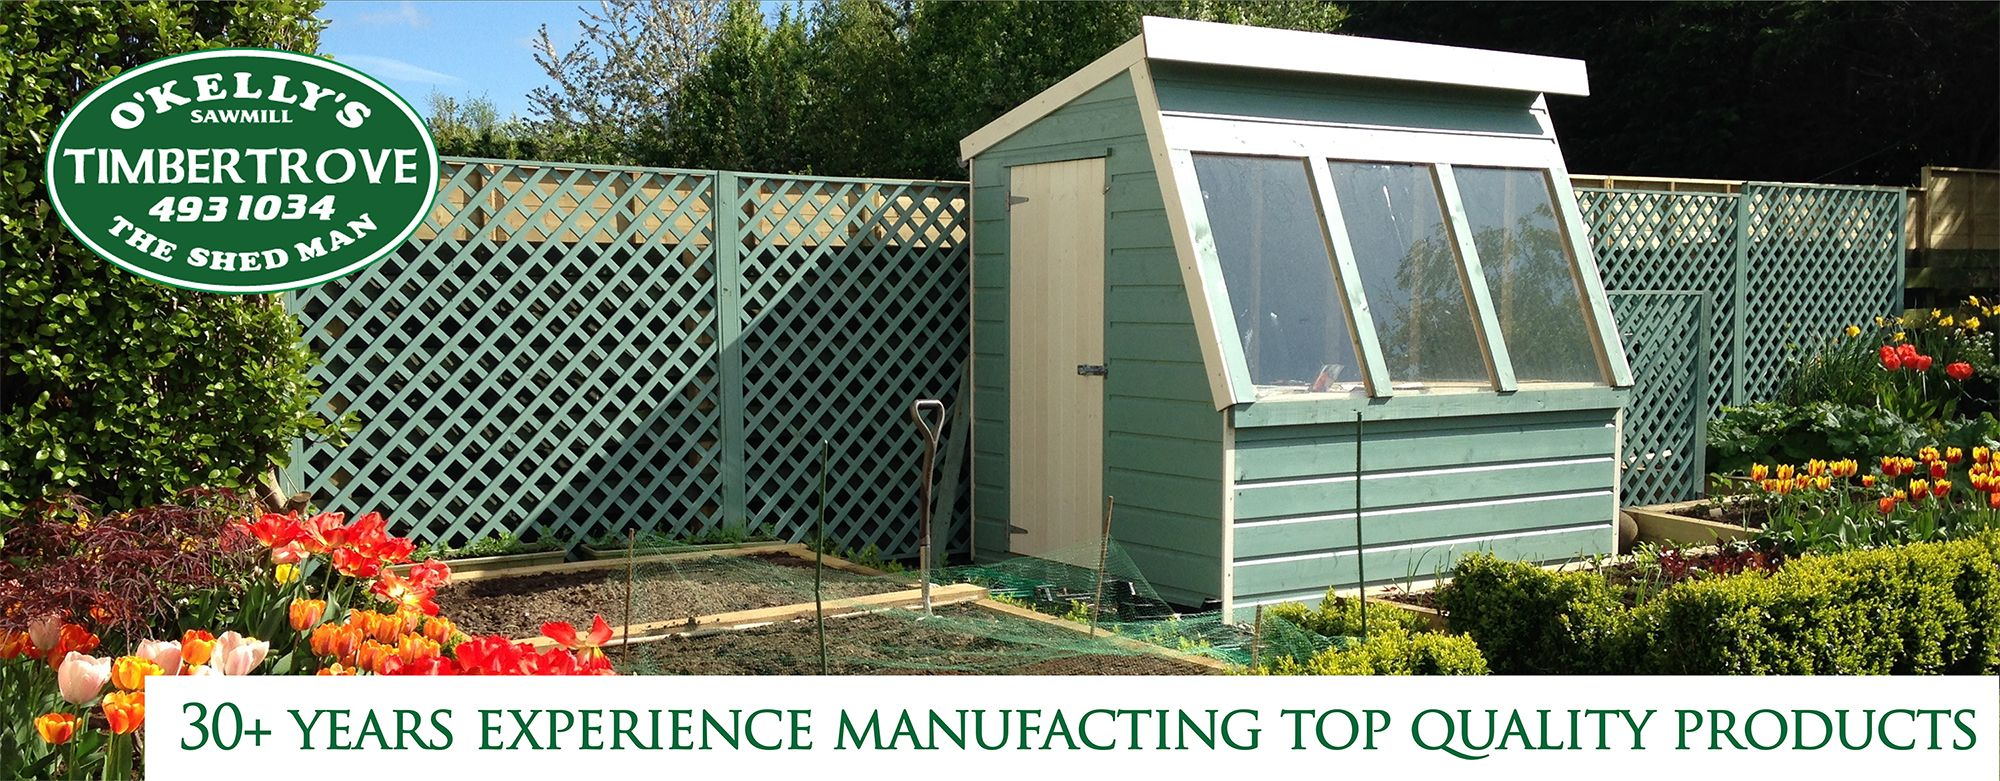 Grow Your Own Potting Shed Timbertrove